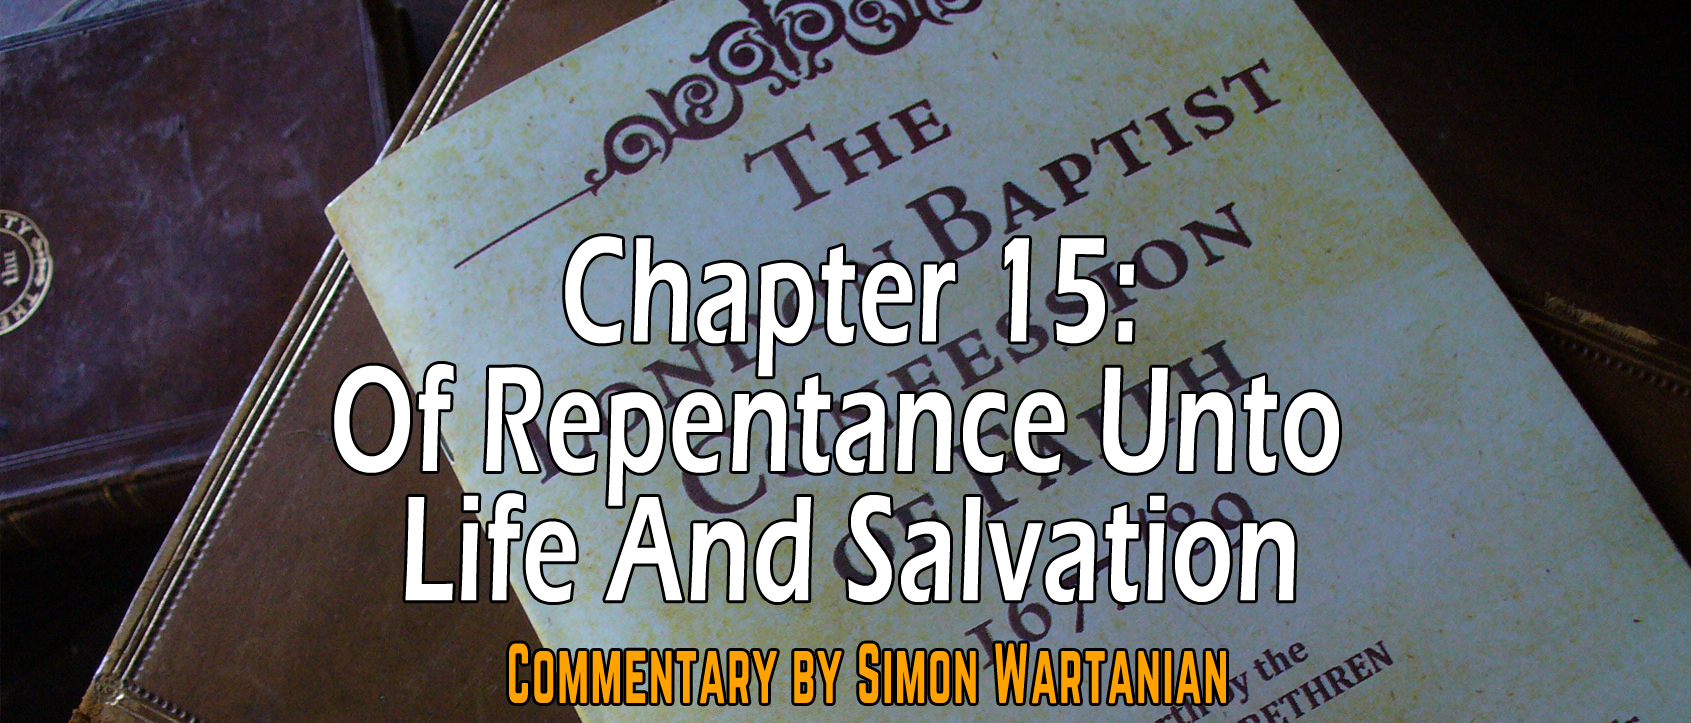 1689 Baptist Confession Chapter 15: Of Repentance Unto Life and Salvation - Commentary